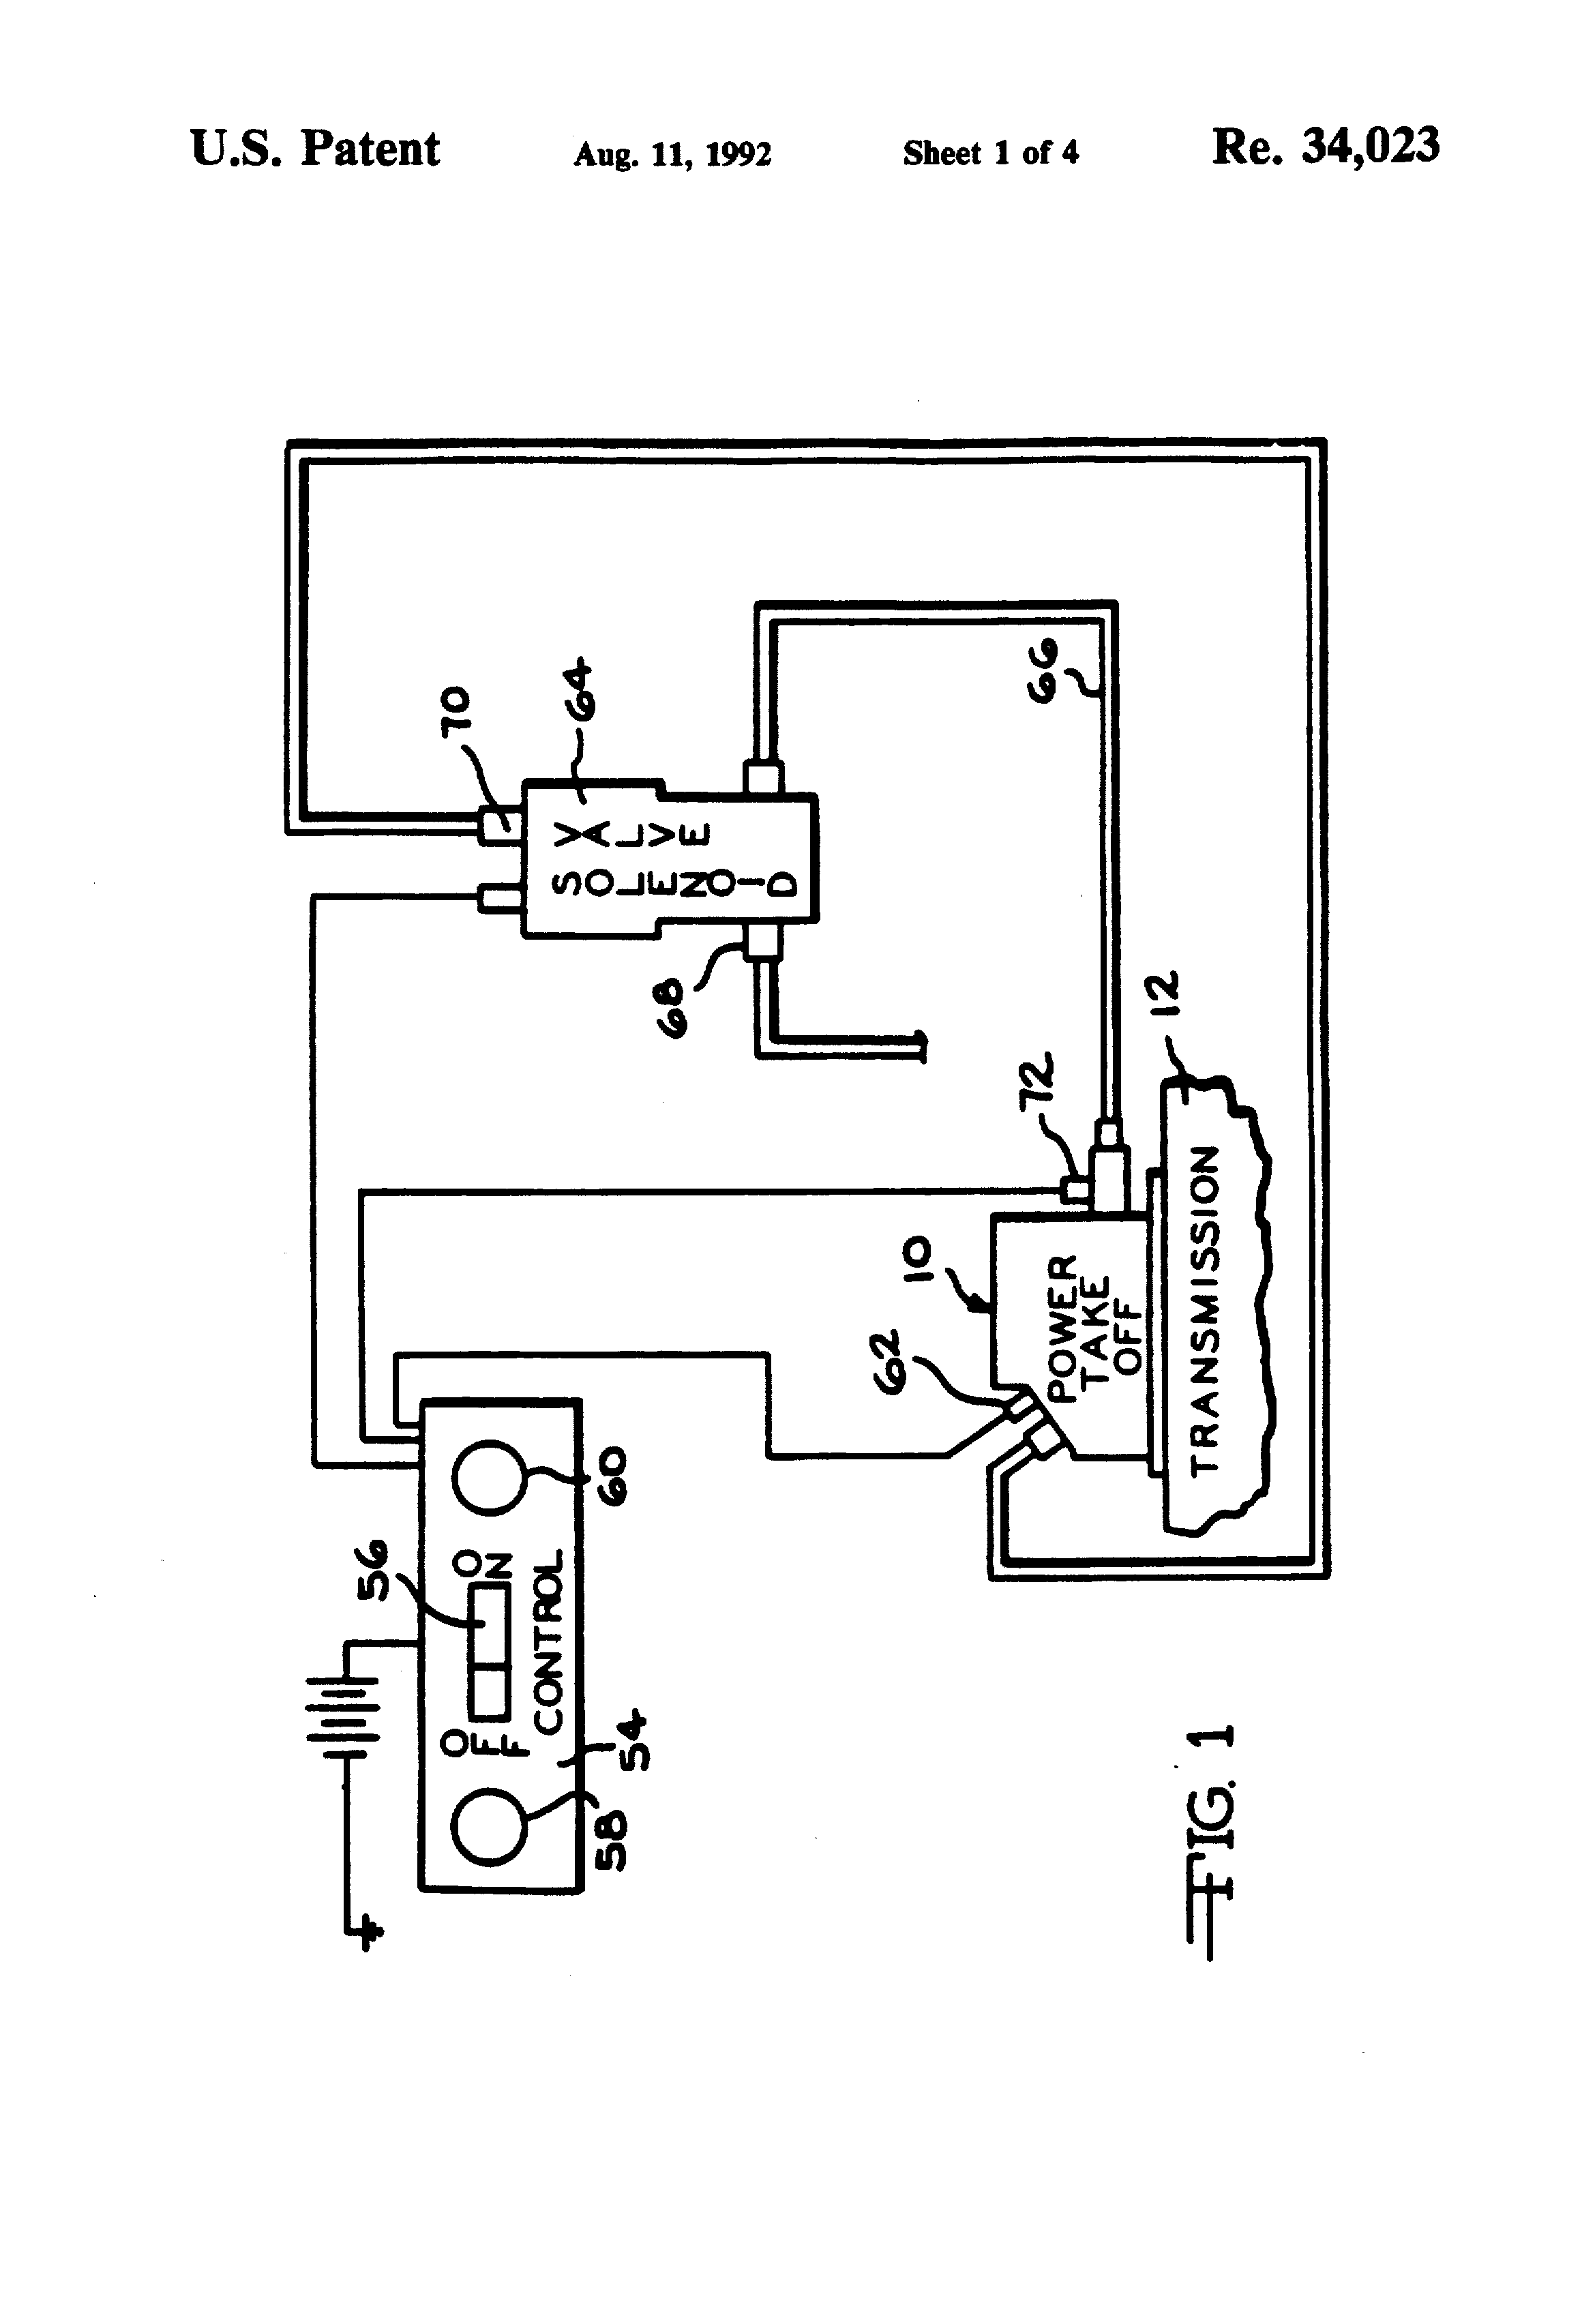 USRE34023 2 muncie pto wiring diagram muncie pto valve \u2022 wiring diagrams j muncie pto wiring diagram at crackthecode.co